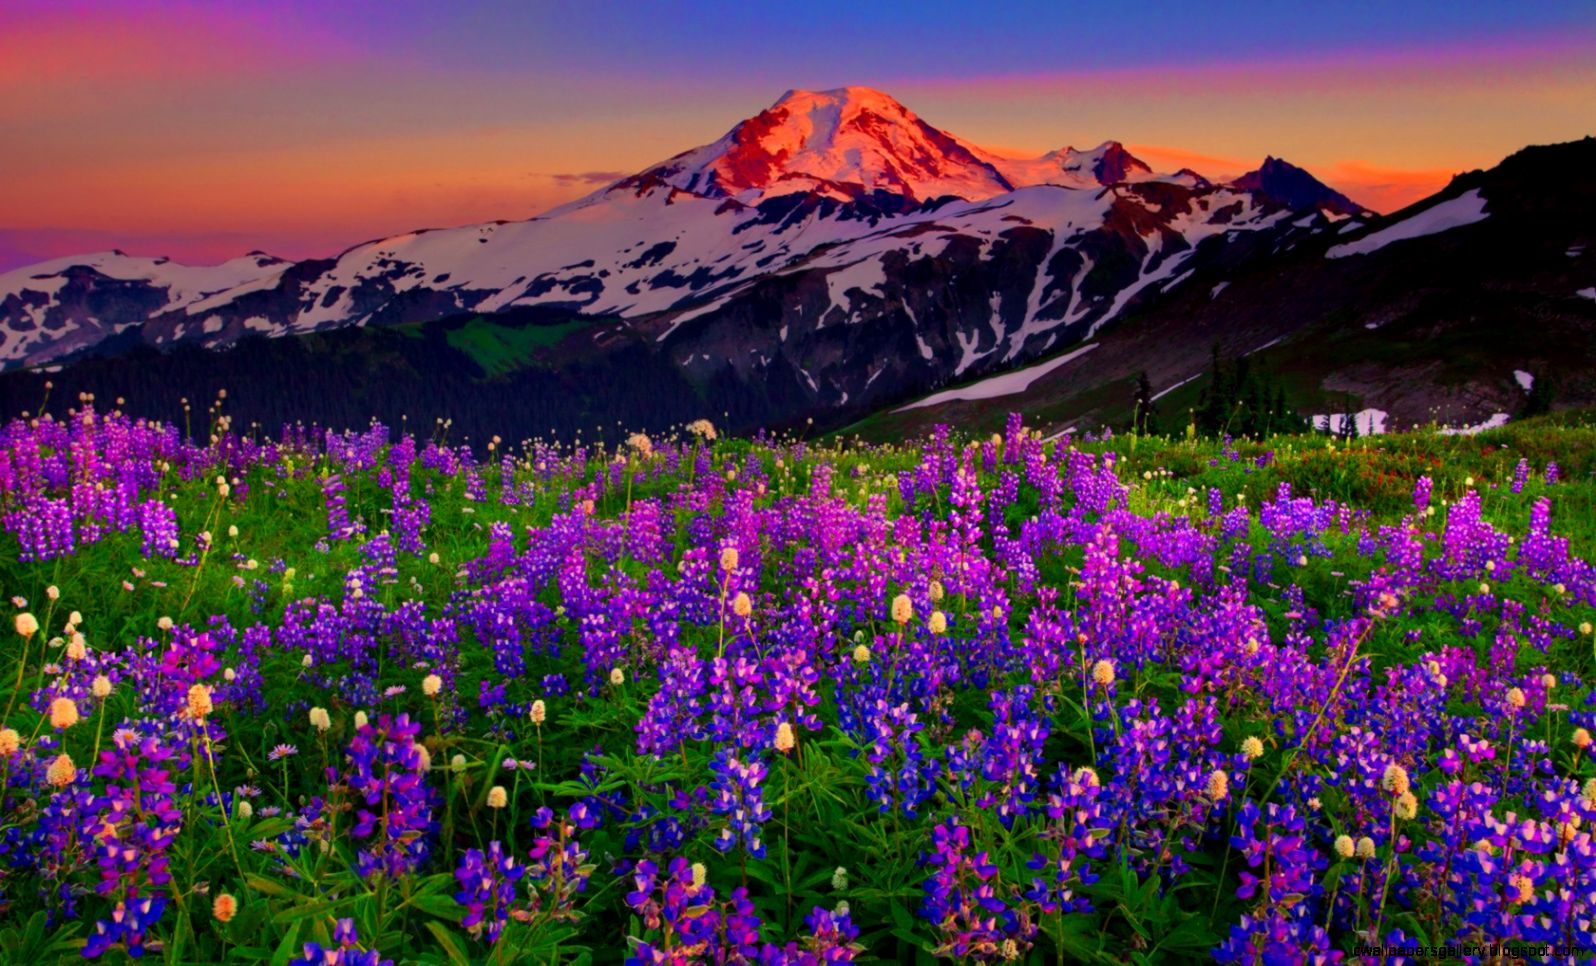 Summer Wildflowers Wallpaper Summer Wildflowers Wallpaper